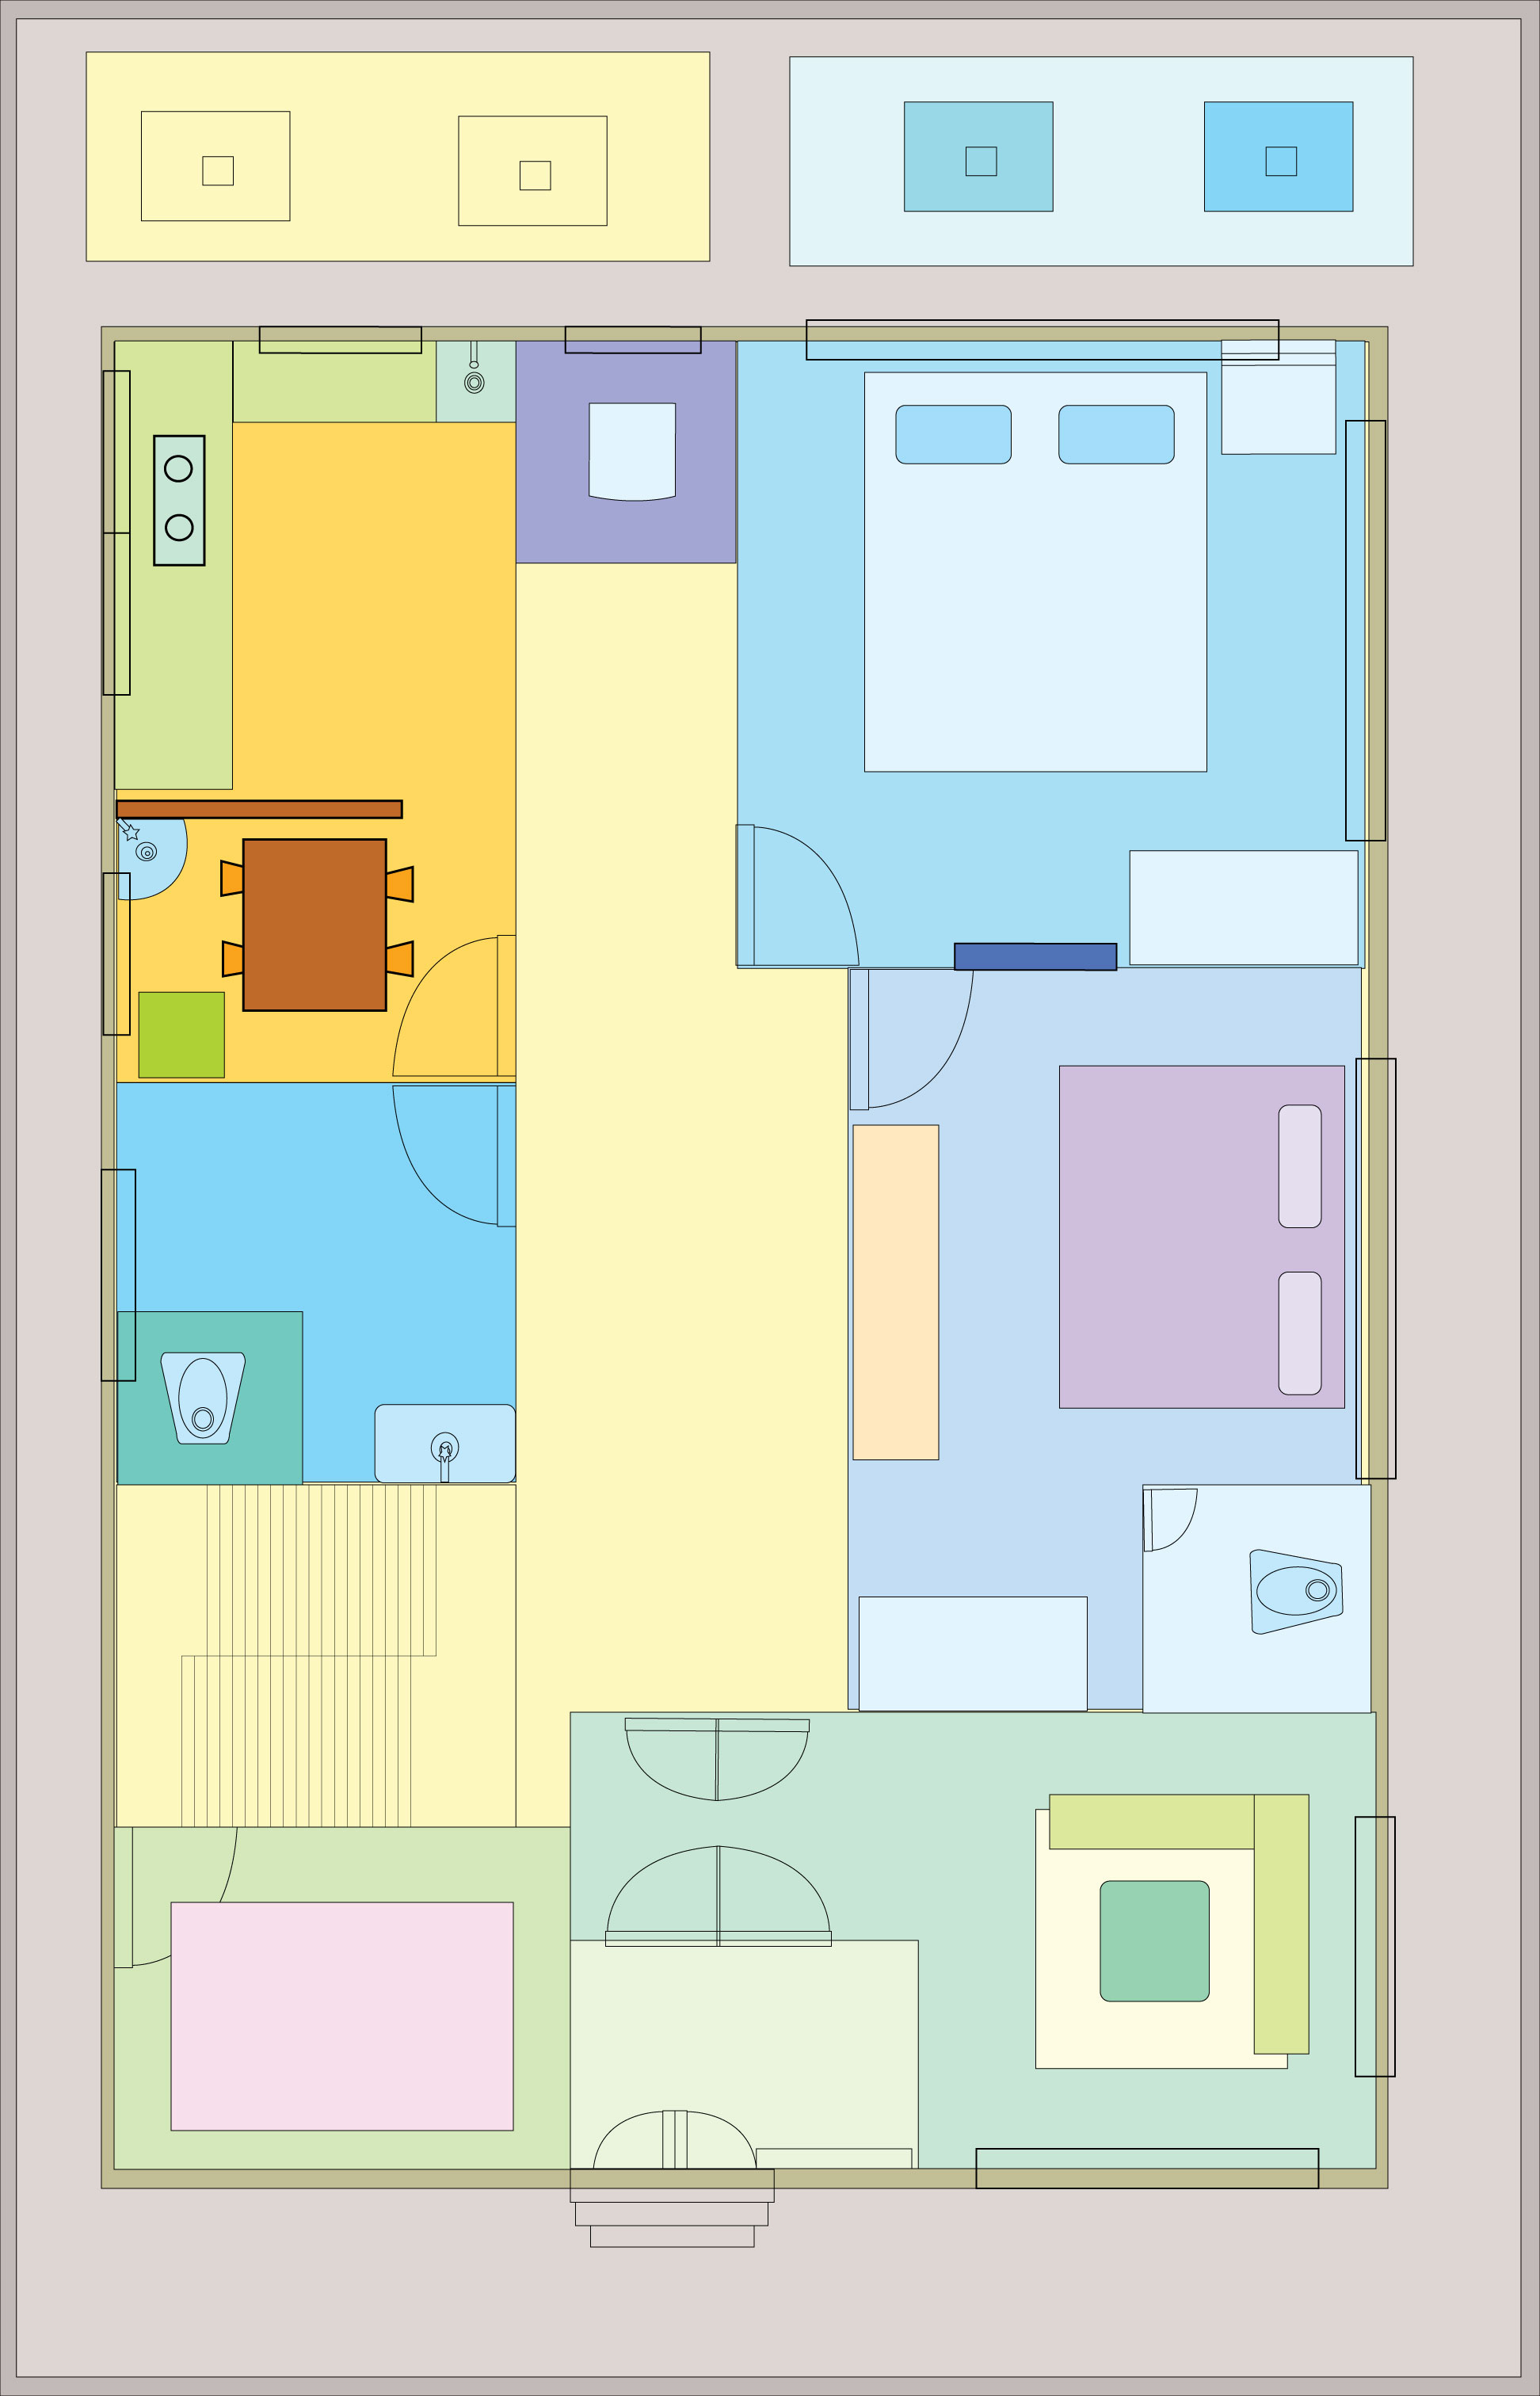 Floorplan Pritamkarkun Wed Apr 04 2012n